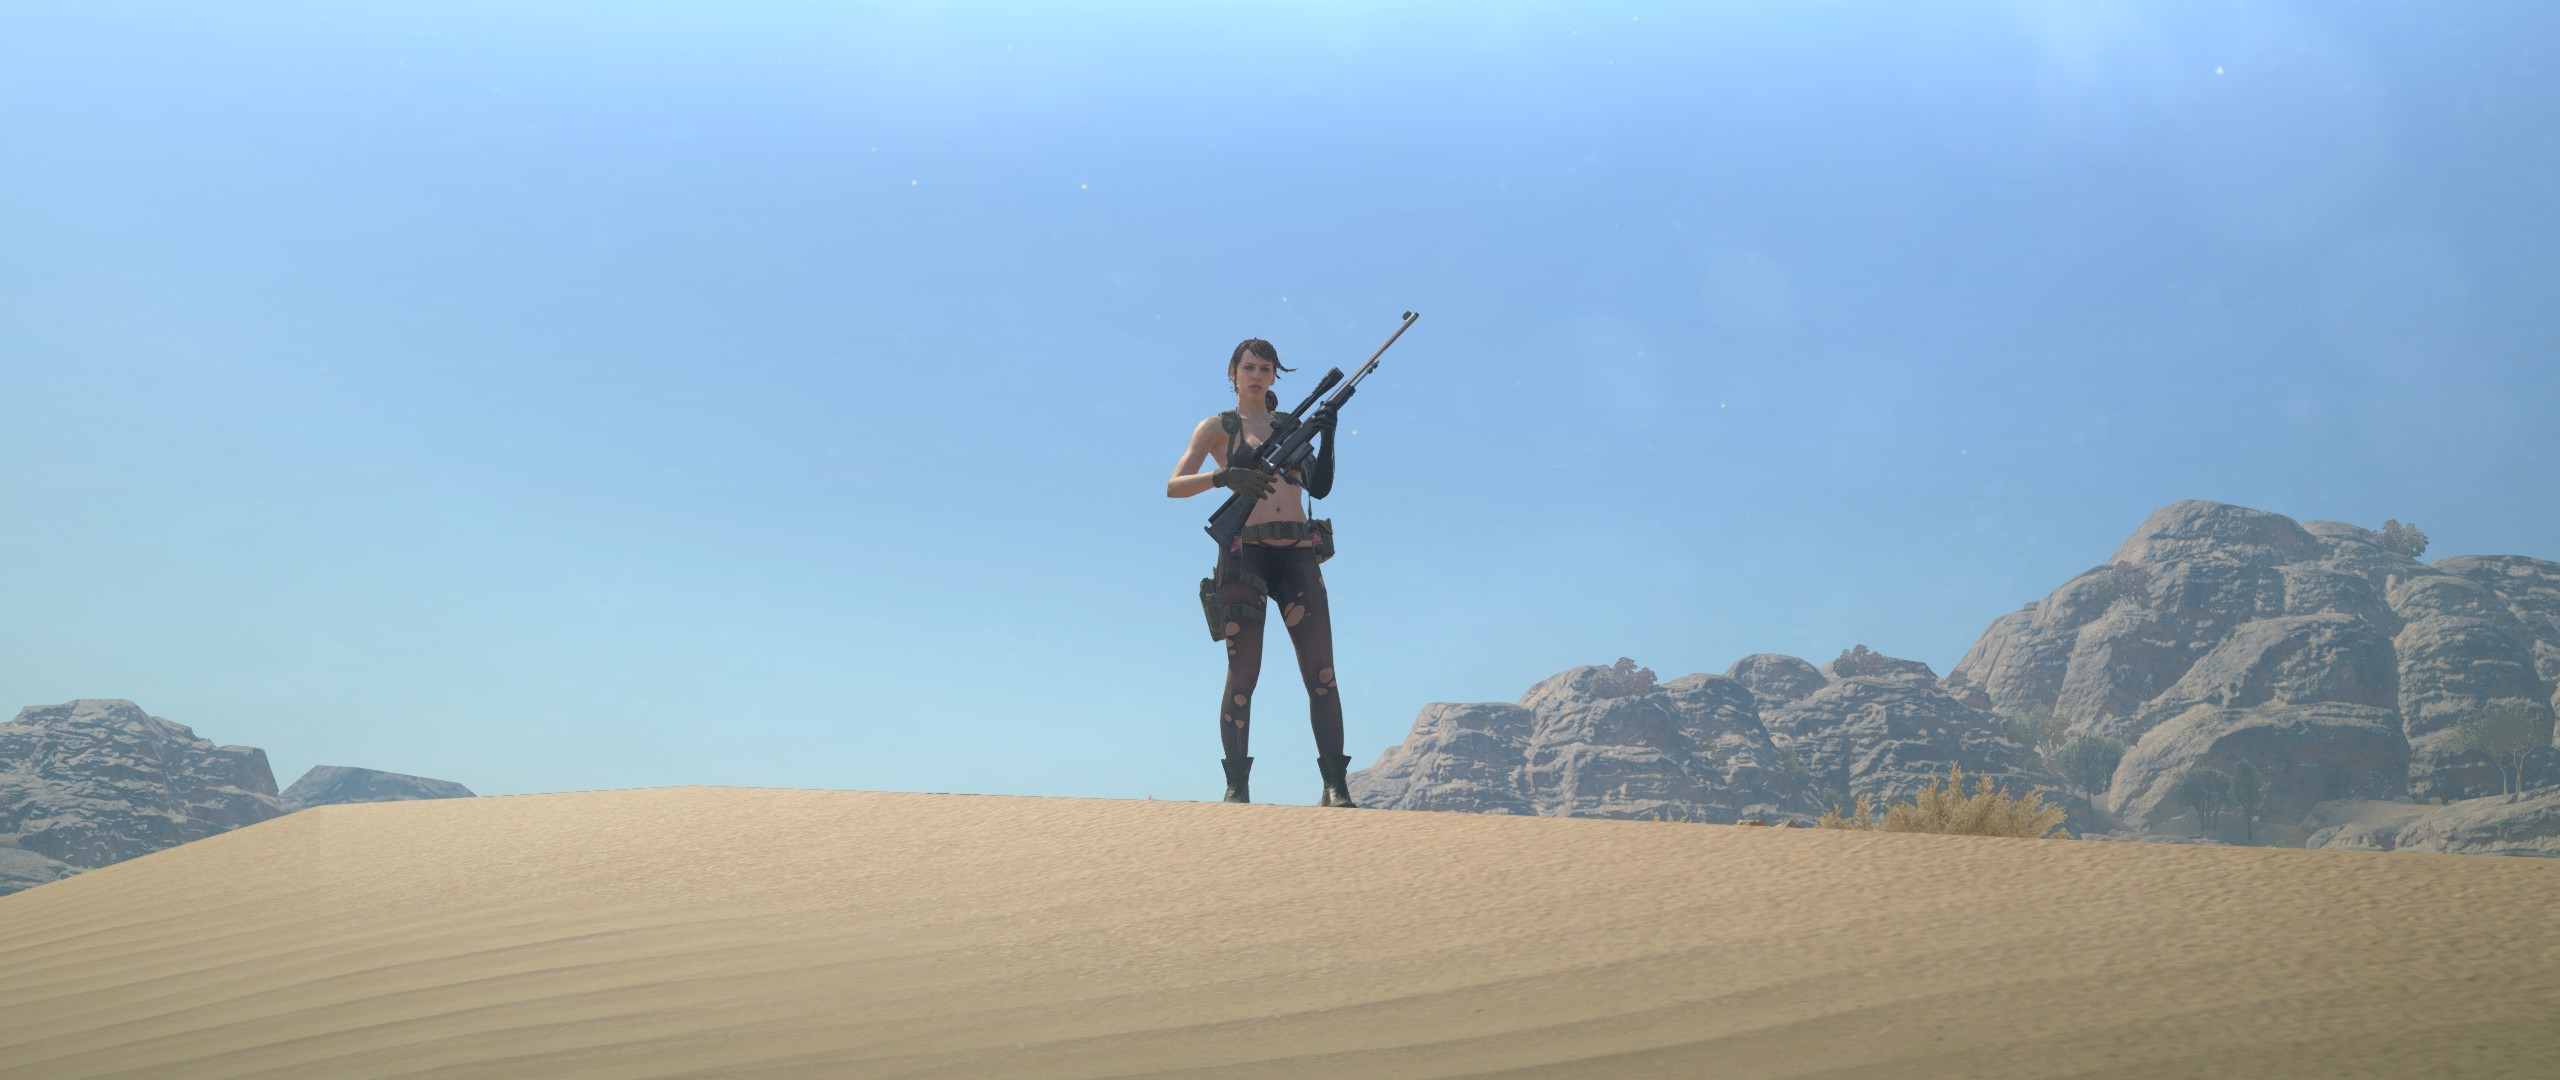 MGSV 21:9 Quiet Wallpaper for those interested. #MetalGearSolid #mgs #MGSV